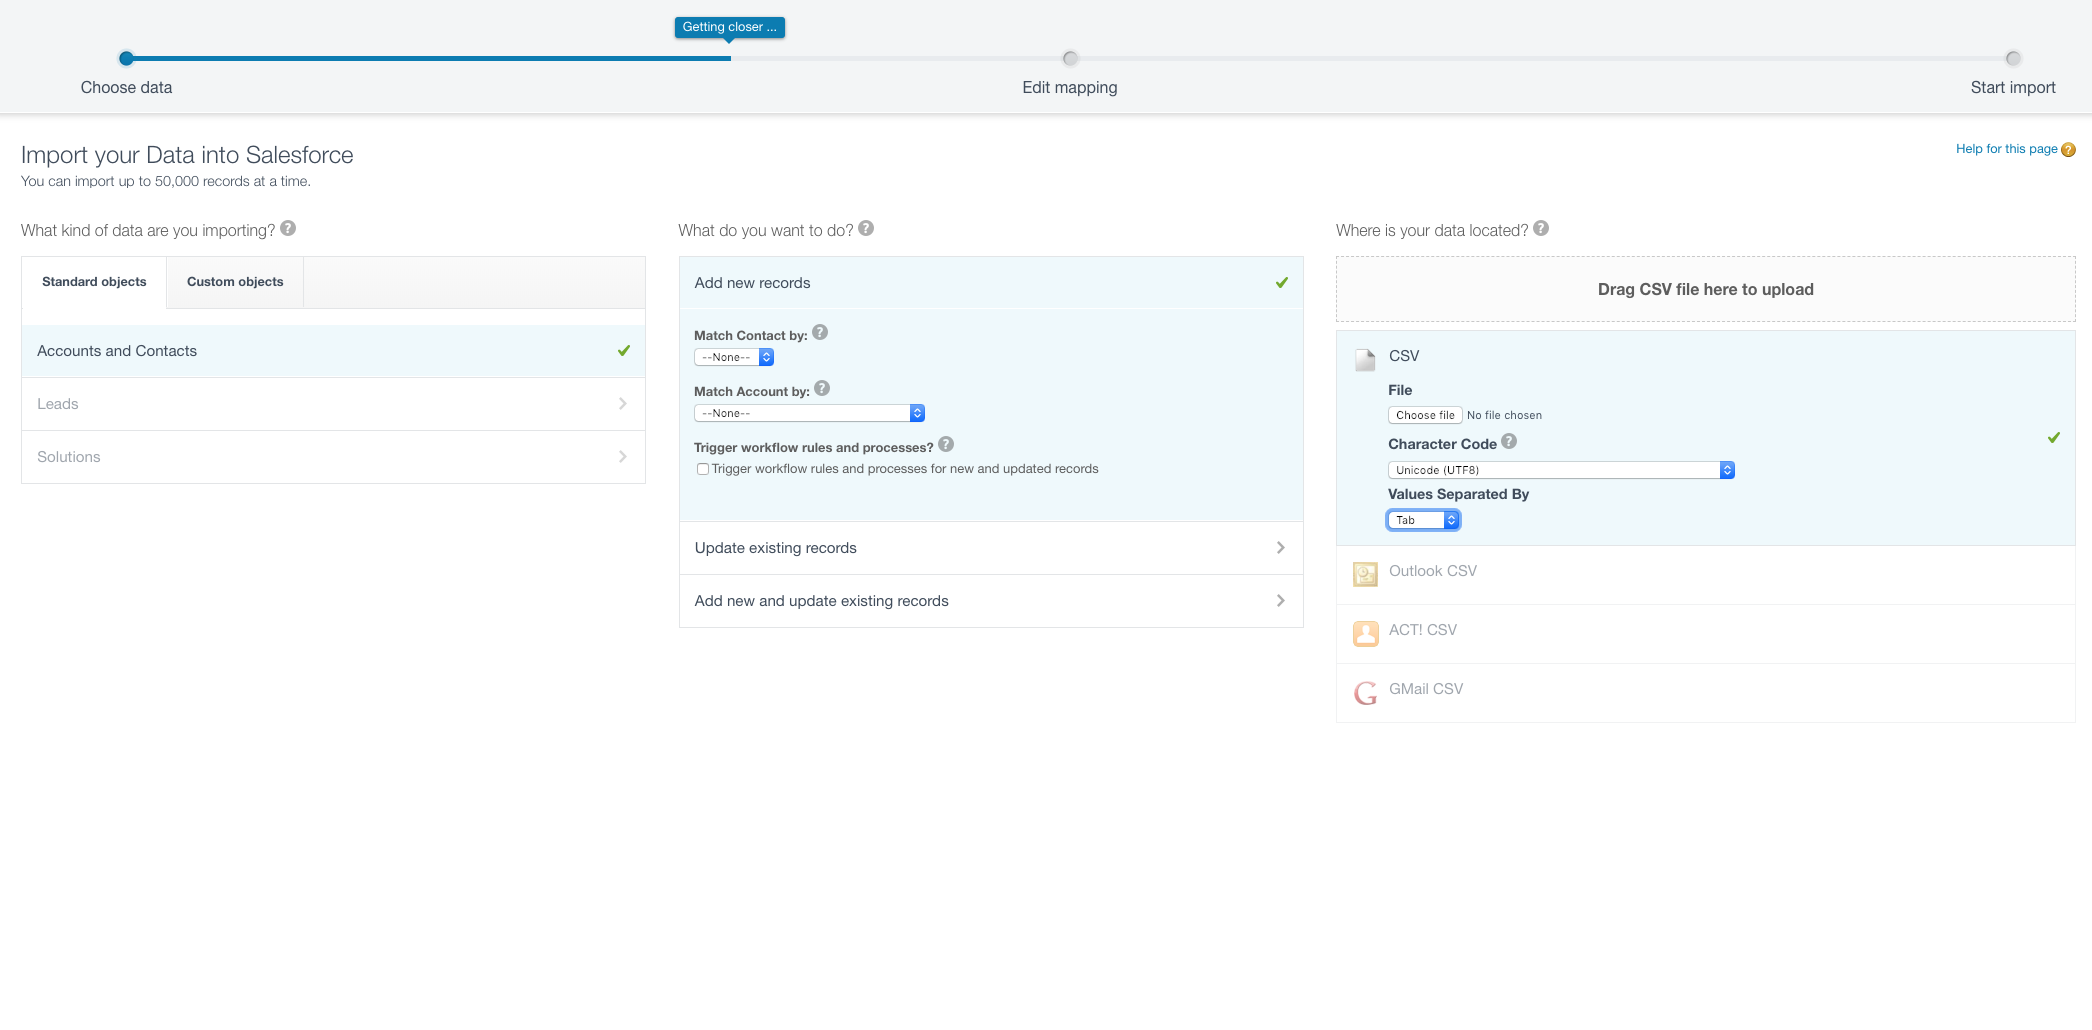 How to migrate from Pipedrive to Salesforce - Project A - Medium